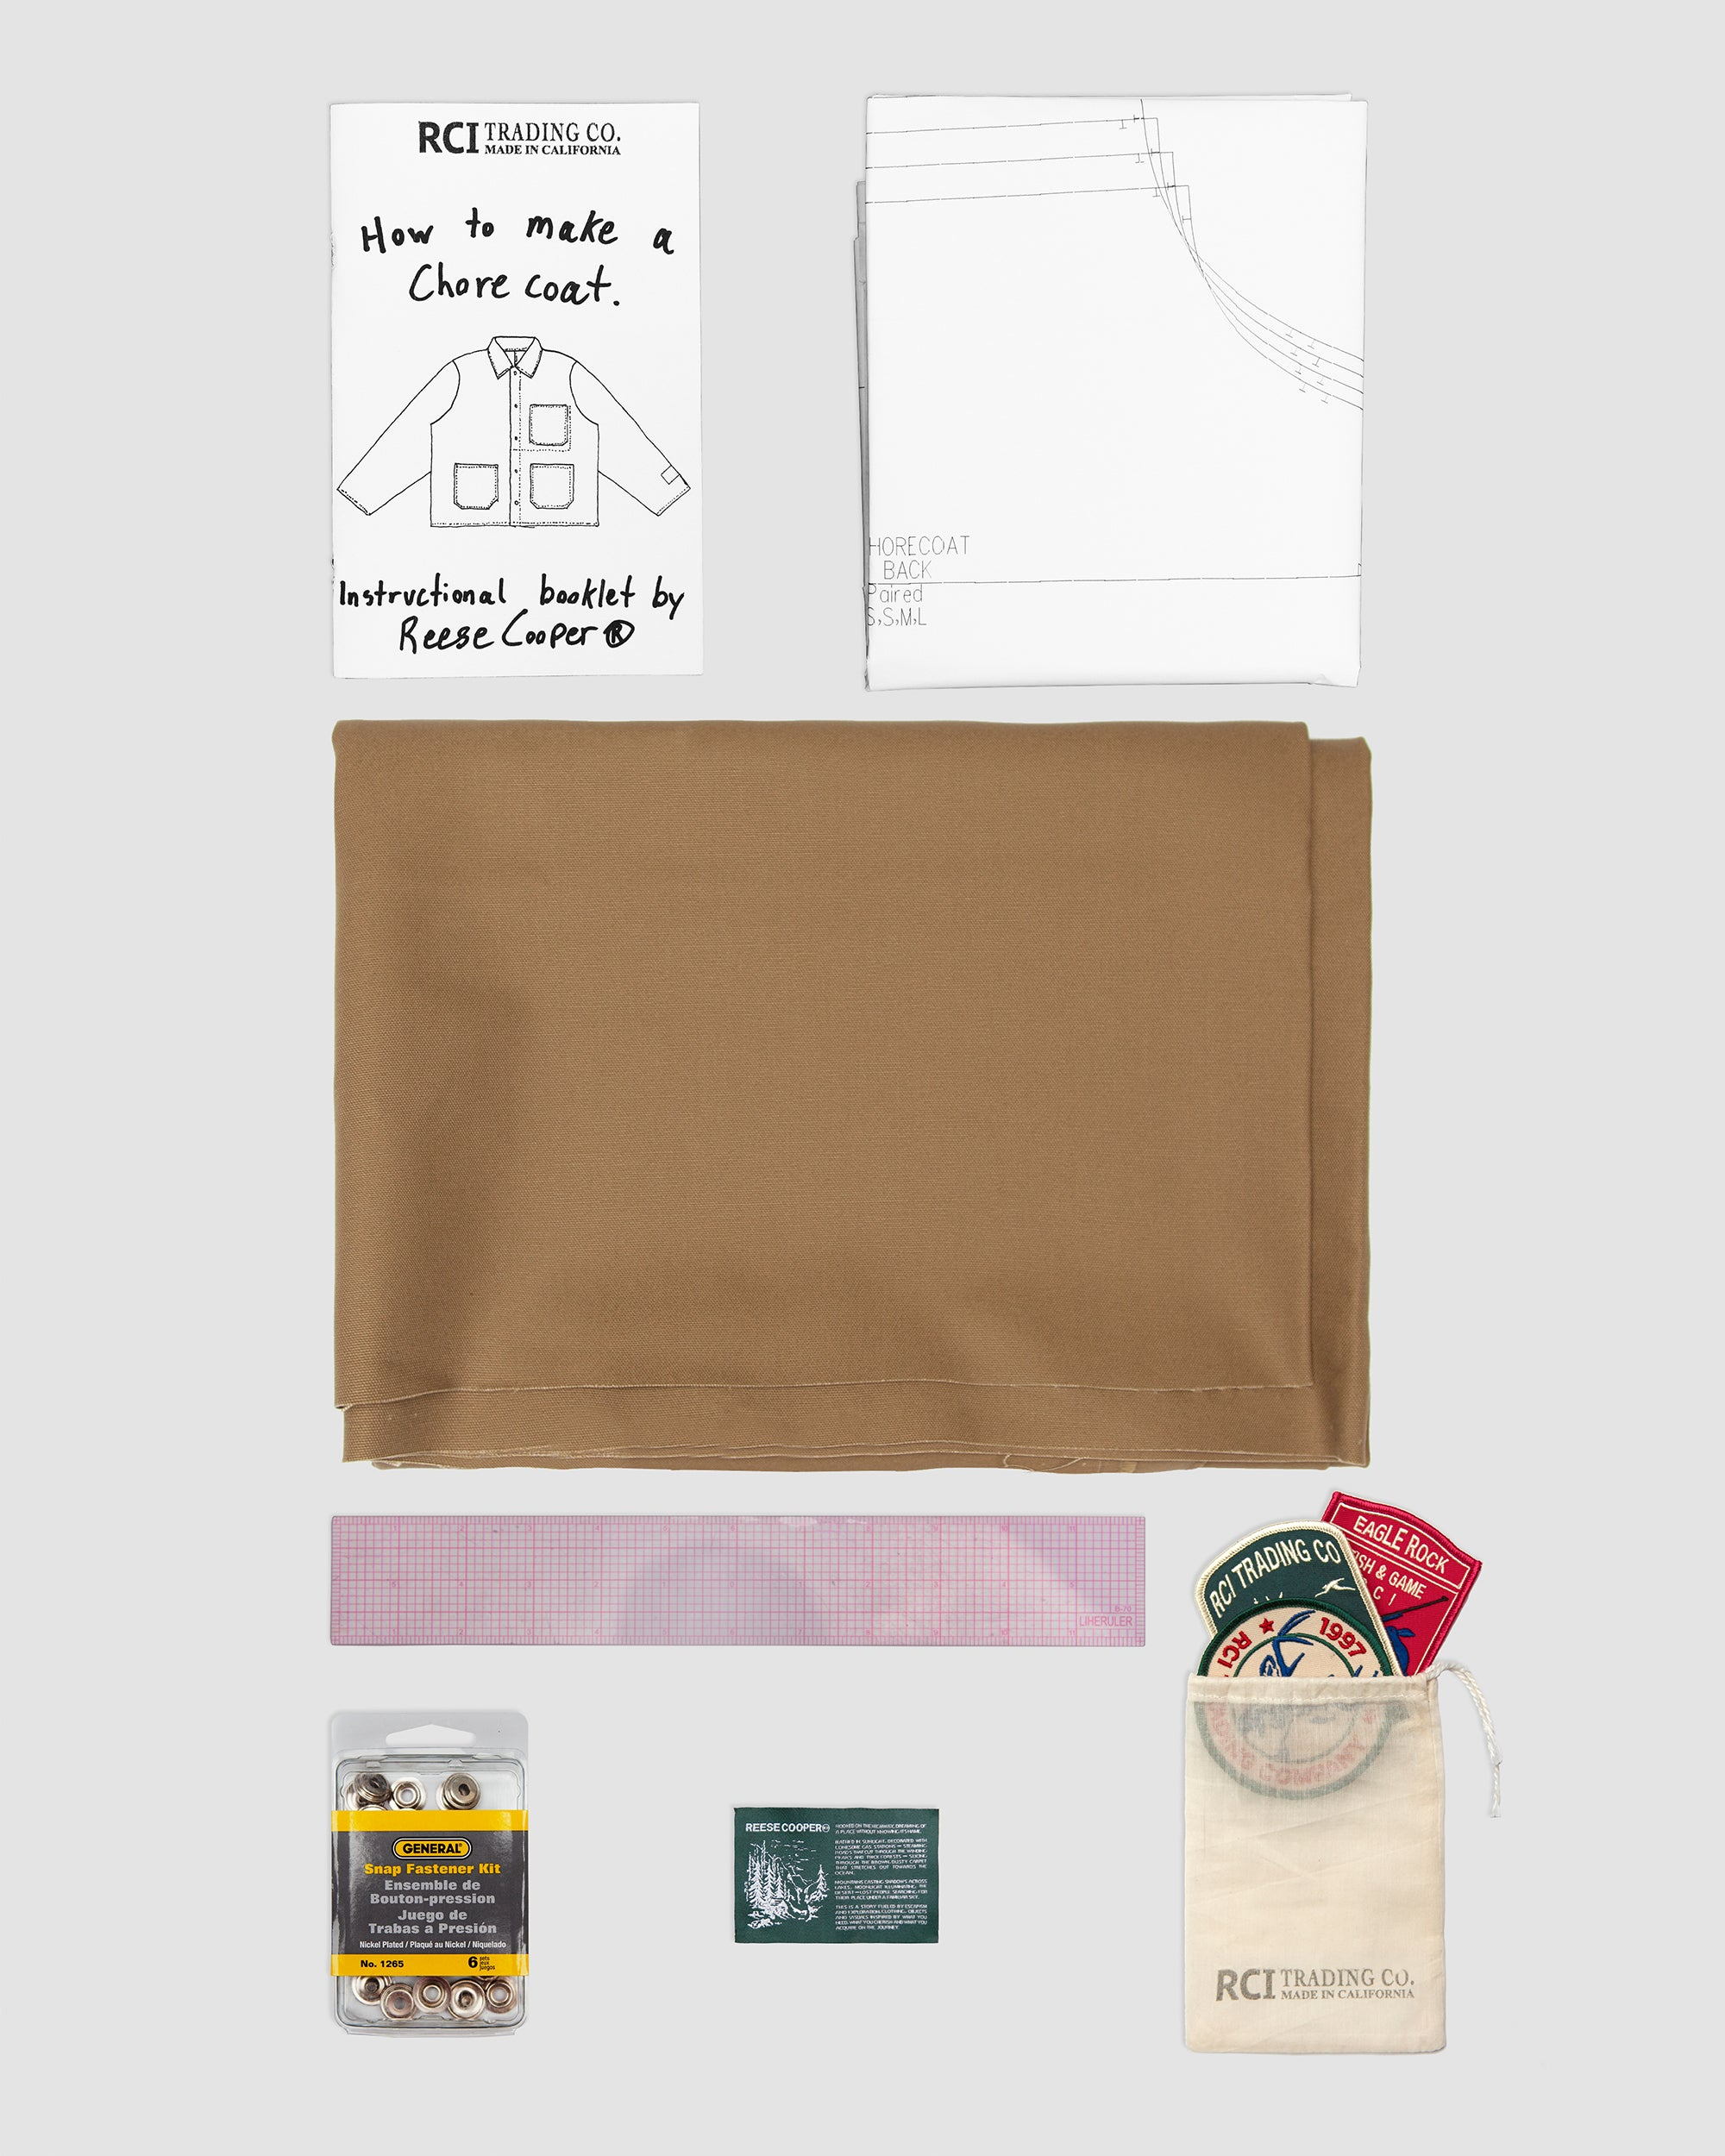 RCI Chore Coat Kit with Brown Brushed Cotton Twill